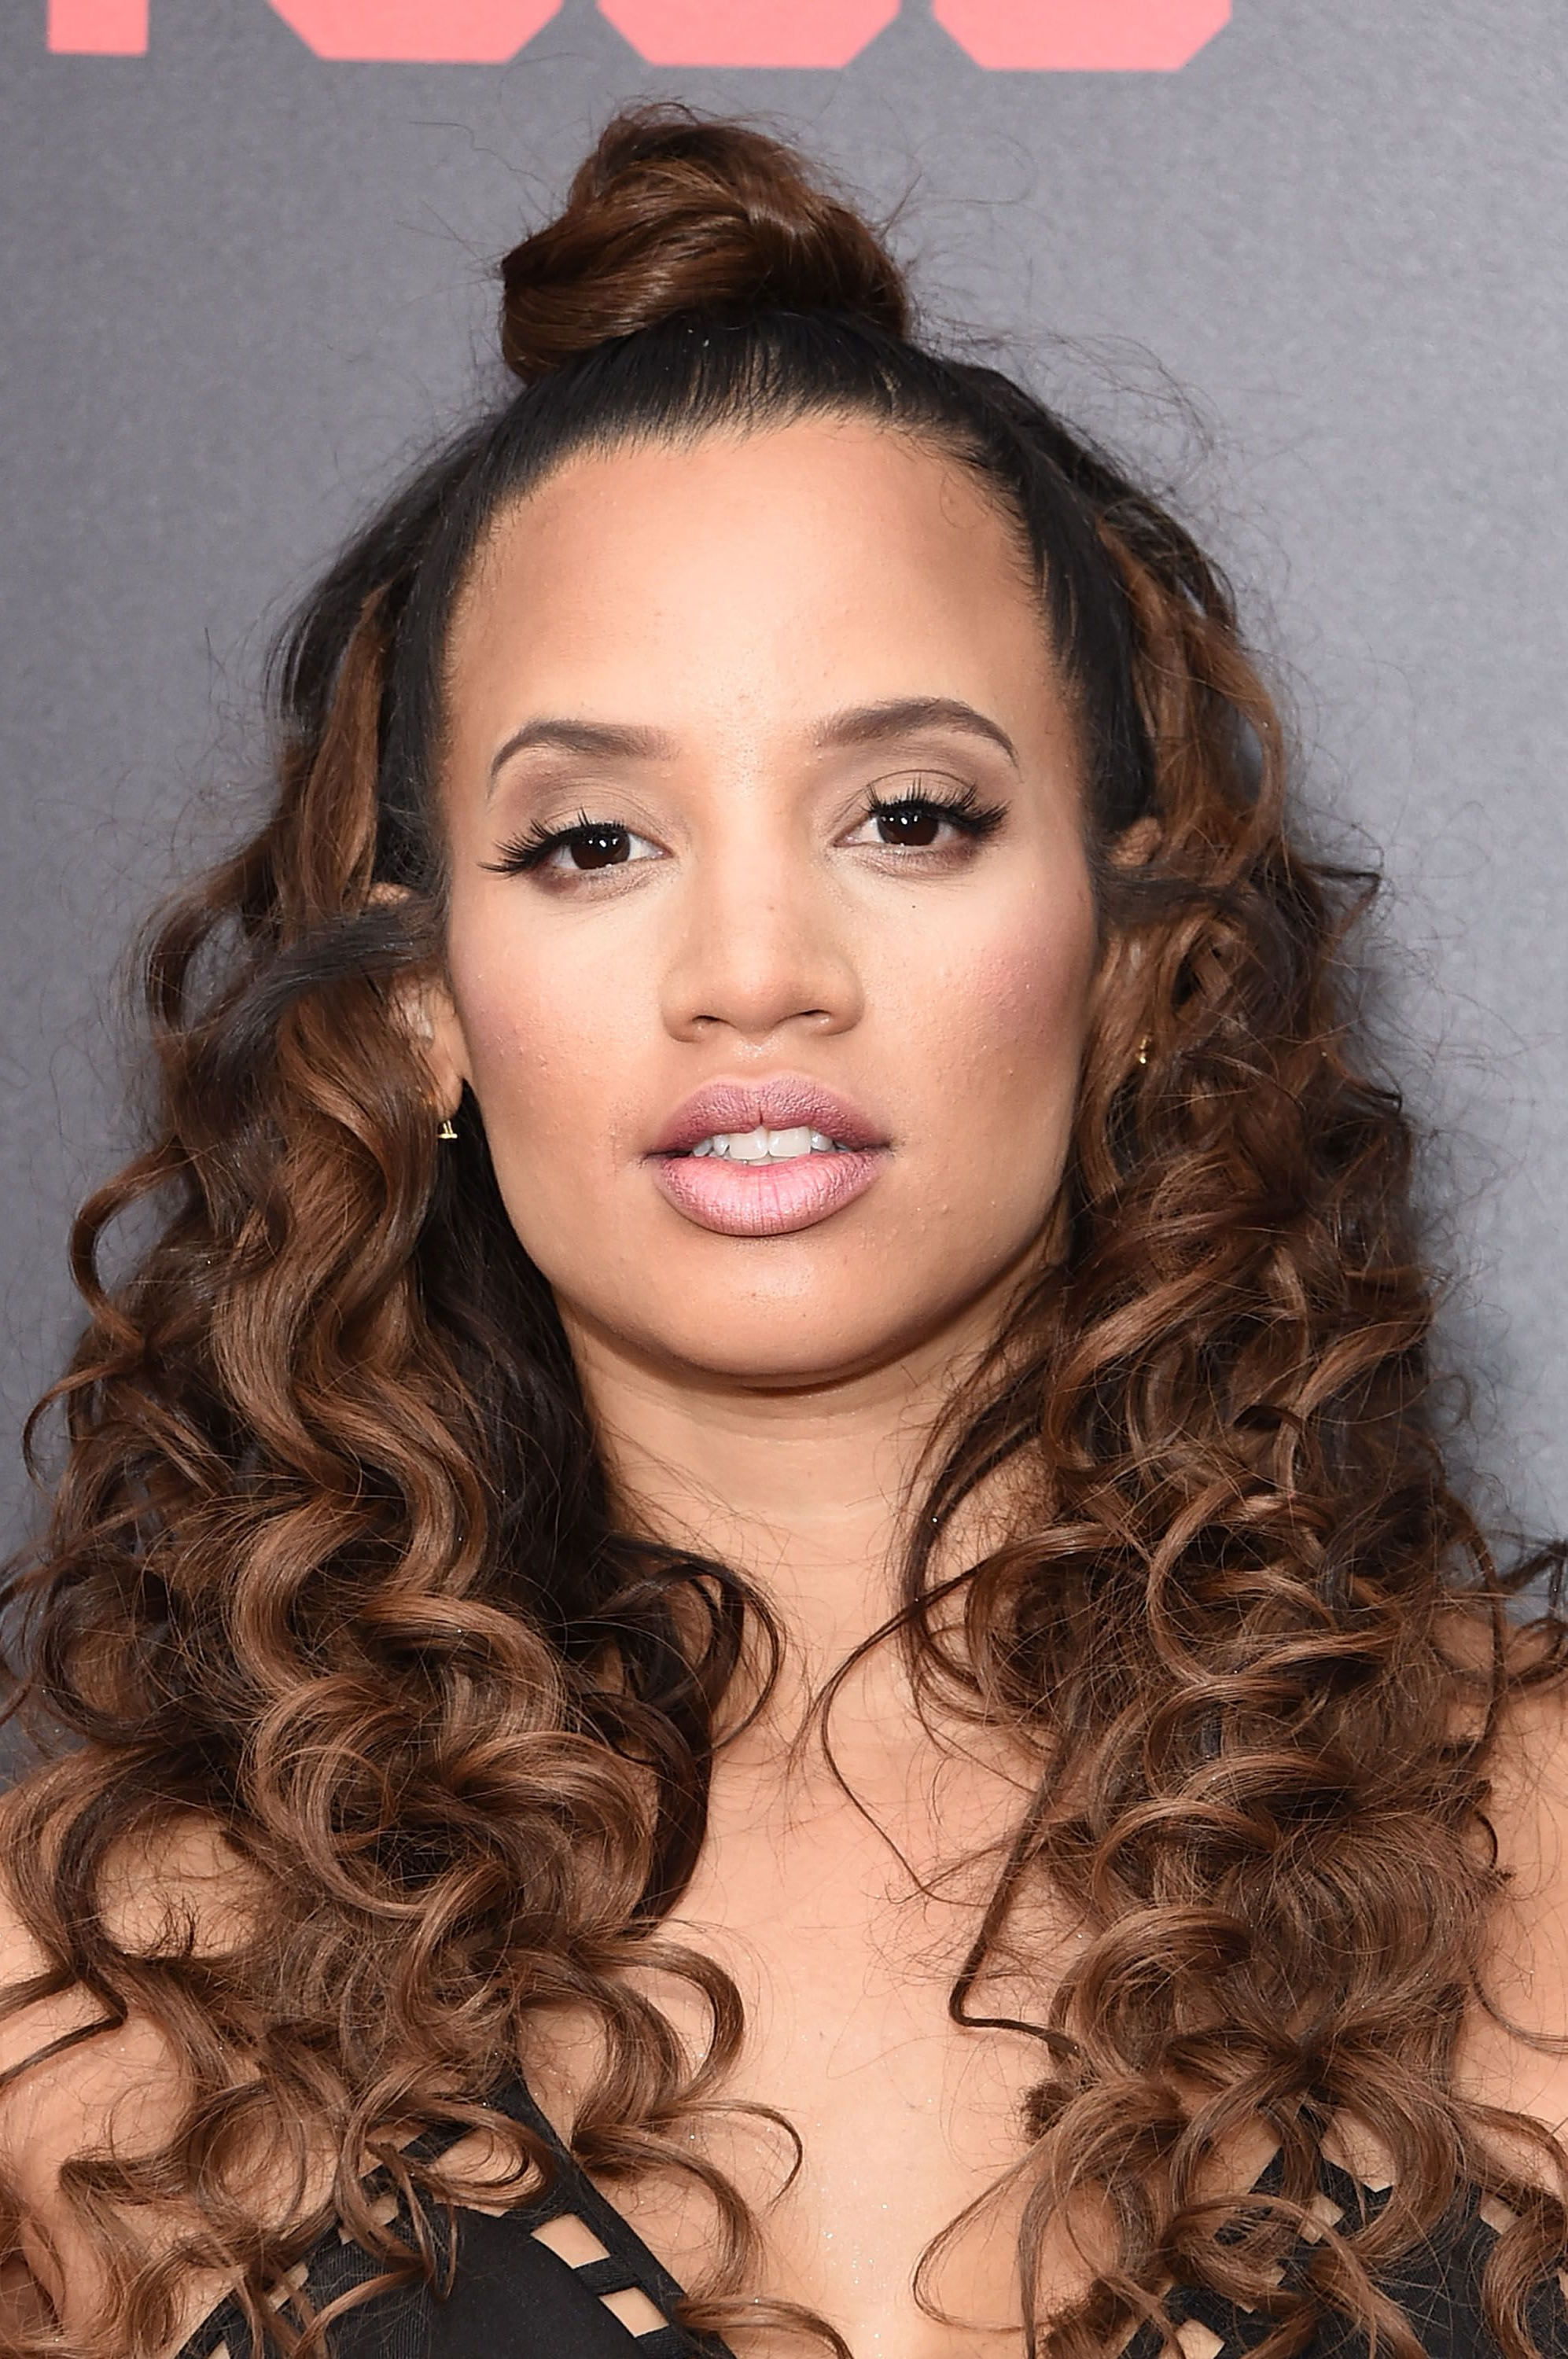 Curly Hairstyles 2019 – 40+ Styles For Every Type Of Curl For Well Known Medium Haircuts With Curly Hair (View 5 of 20)